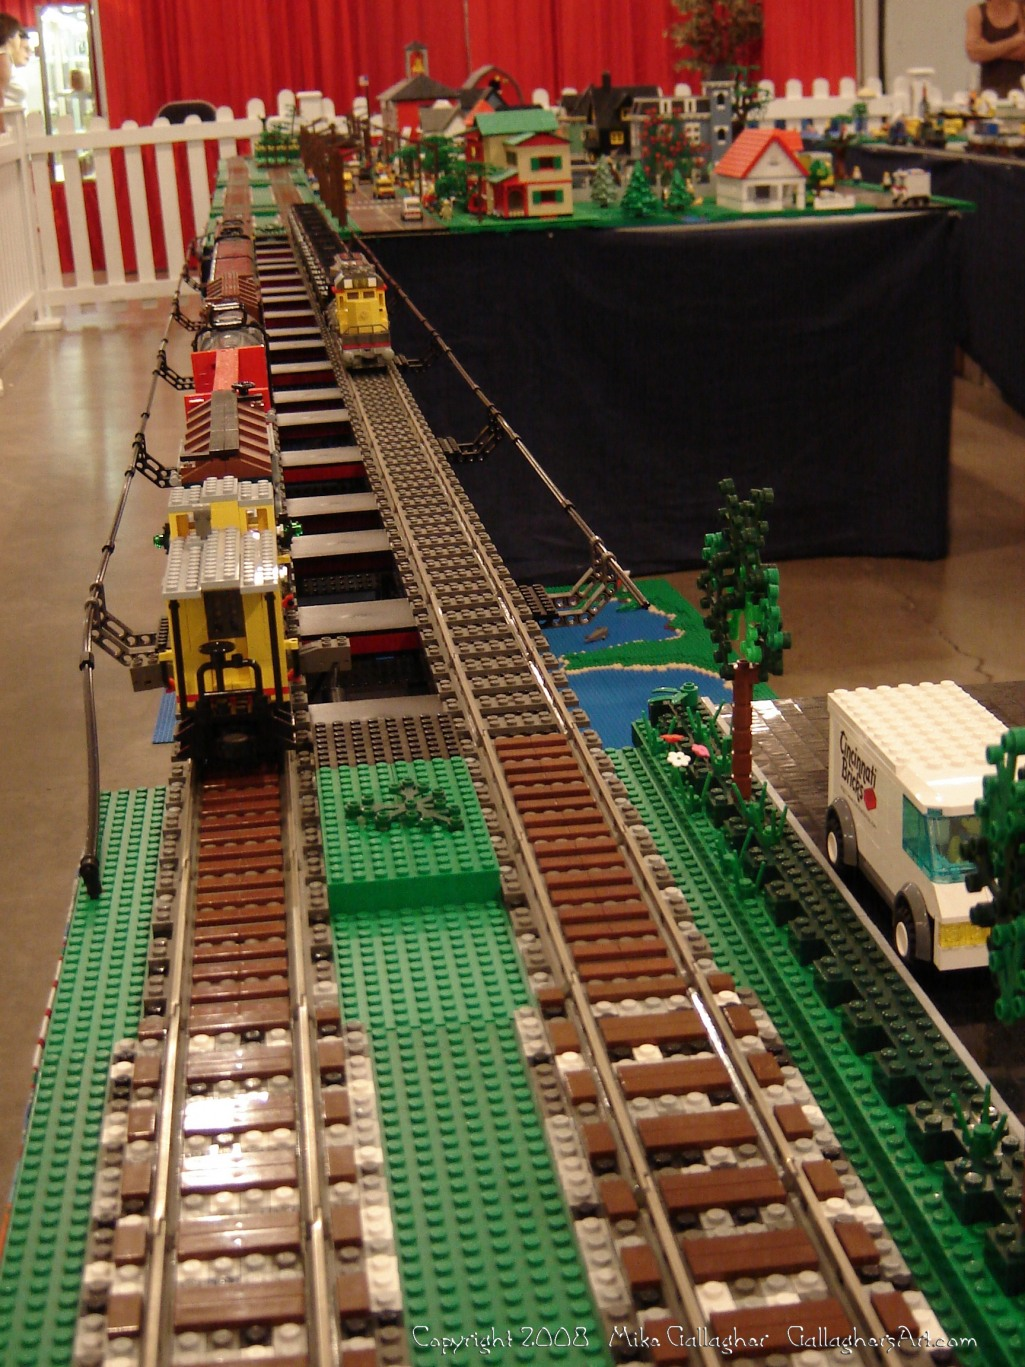 Dsc02520 1 from Ohio State Fair 2008 GallaghersArt_dsc02520_1.jpg - My part of the COLTC LEGO display.